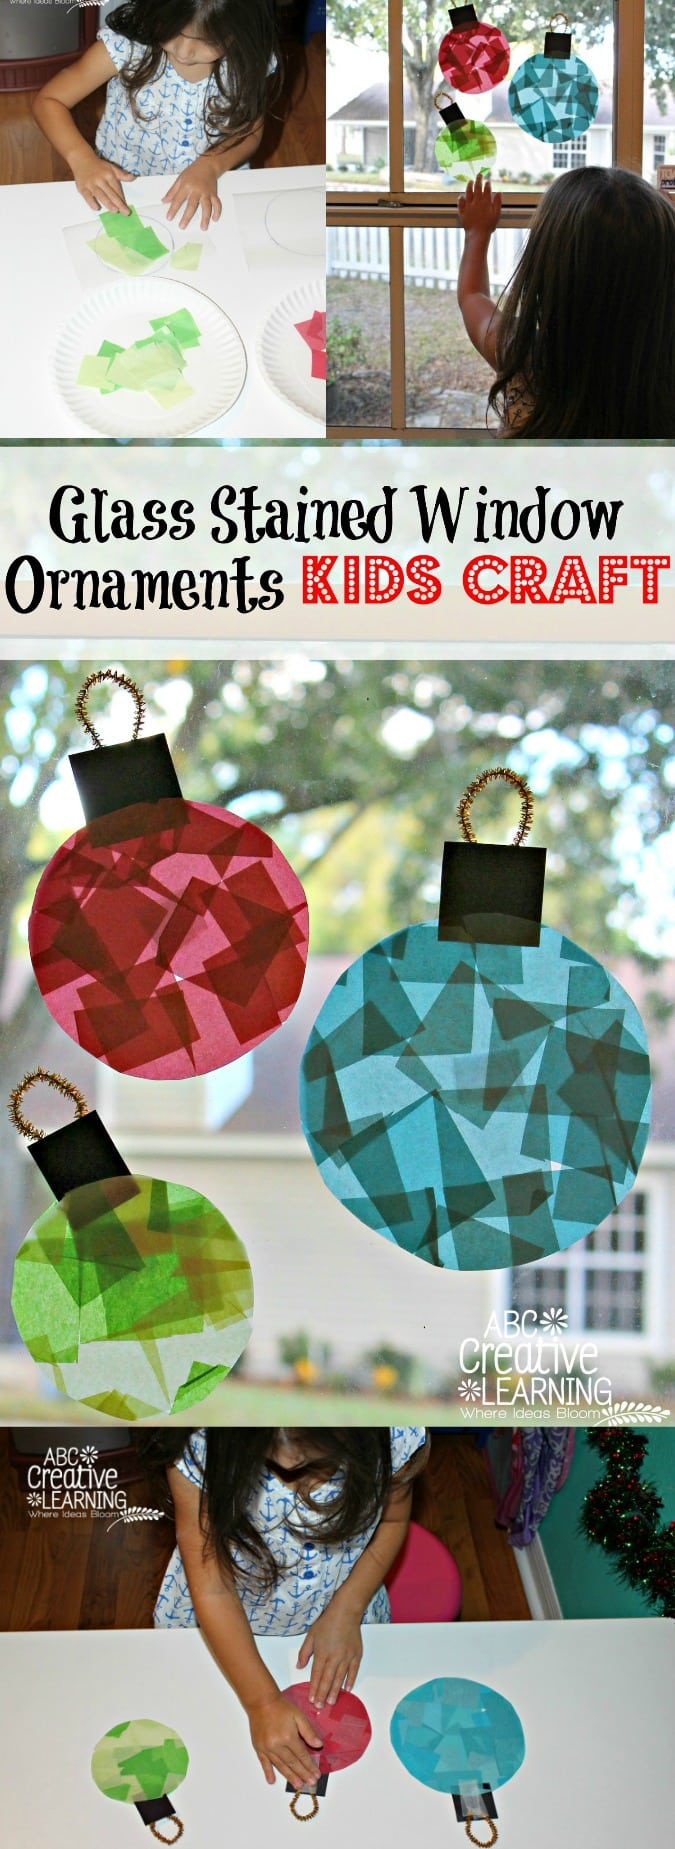 Glass Stained Window Ornaments Kids Craft - simplytodaylife.com